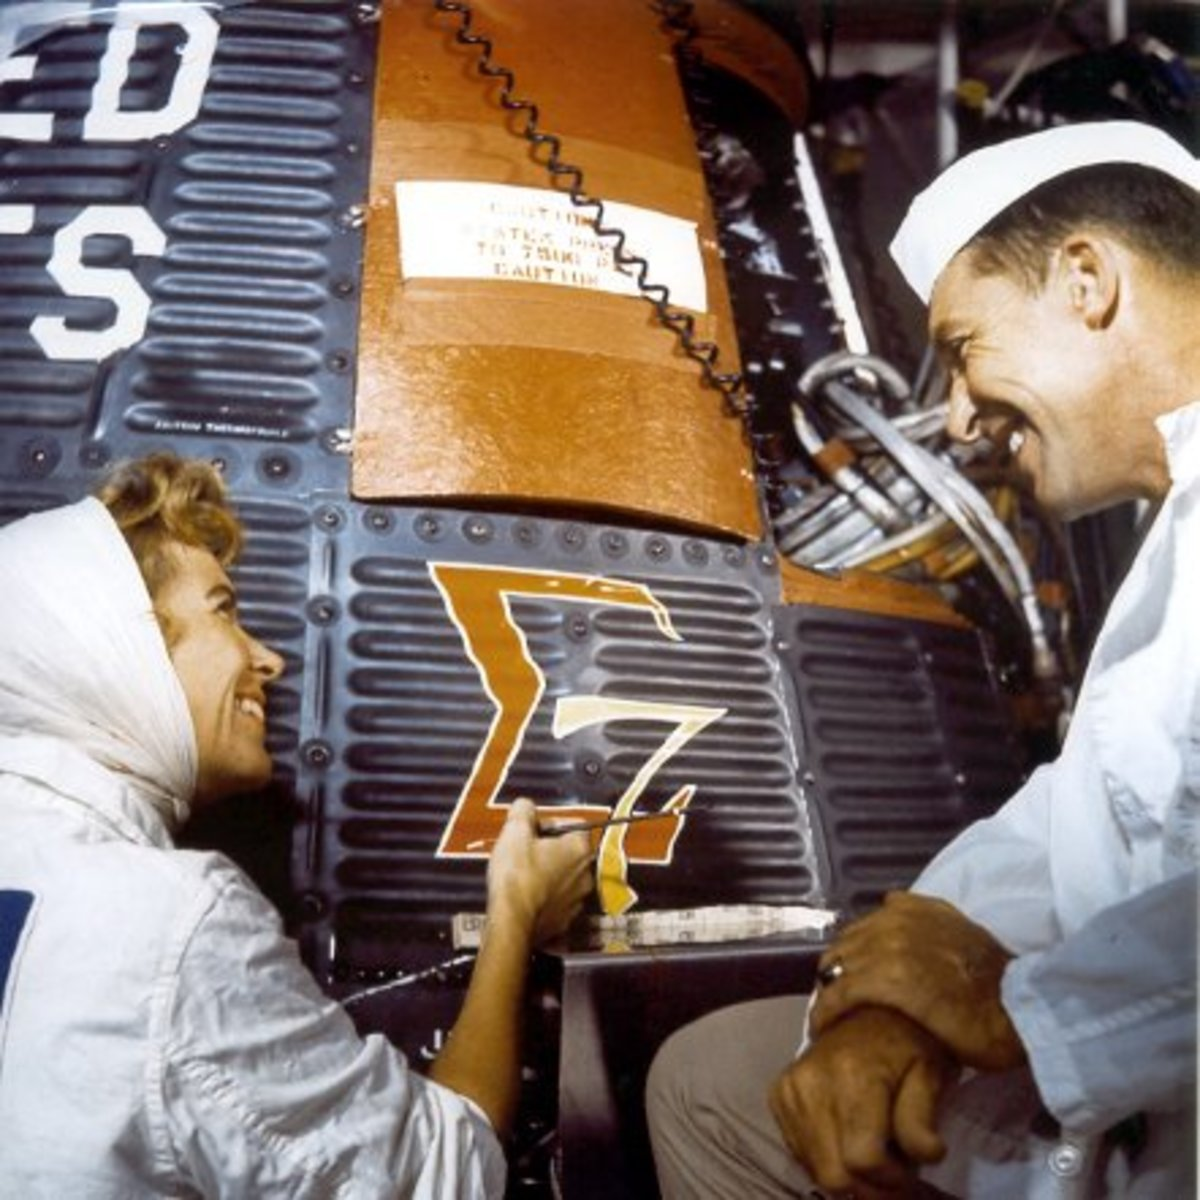 Wally Schirra observes as Cece Bibby paints the Sigma 7 logo. Photo courtesy of NASA.